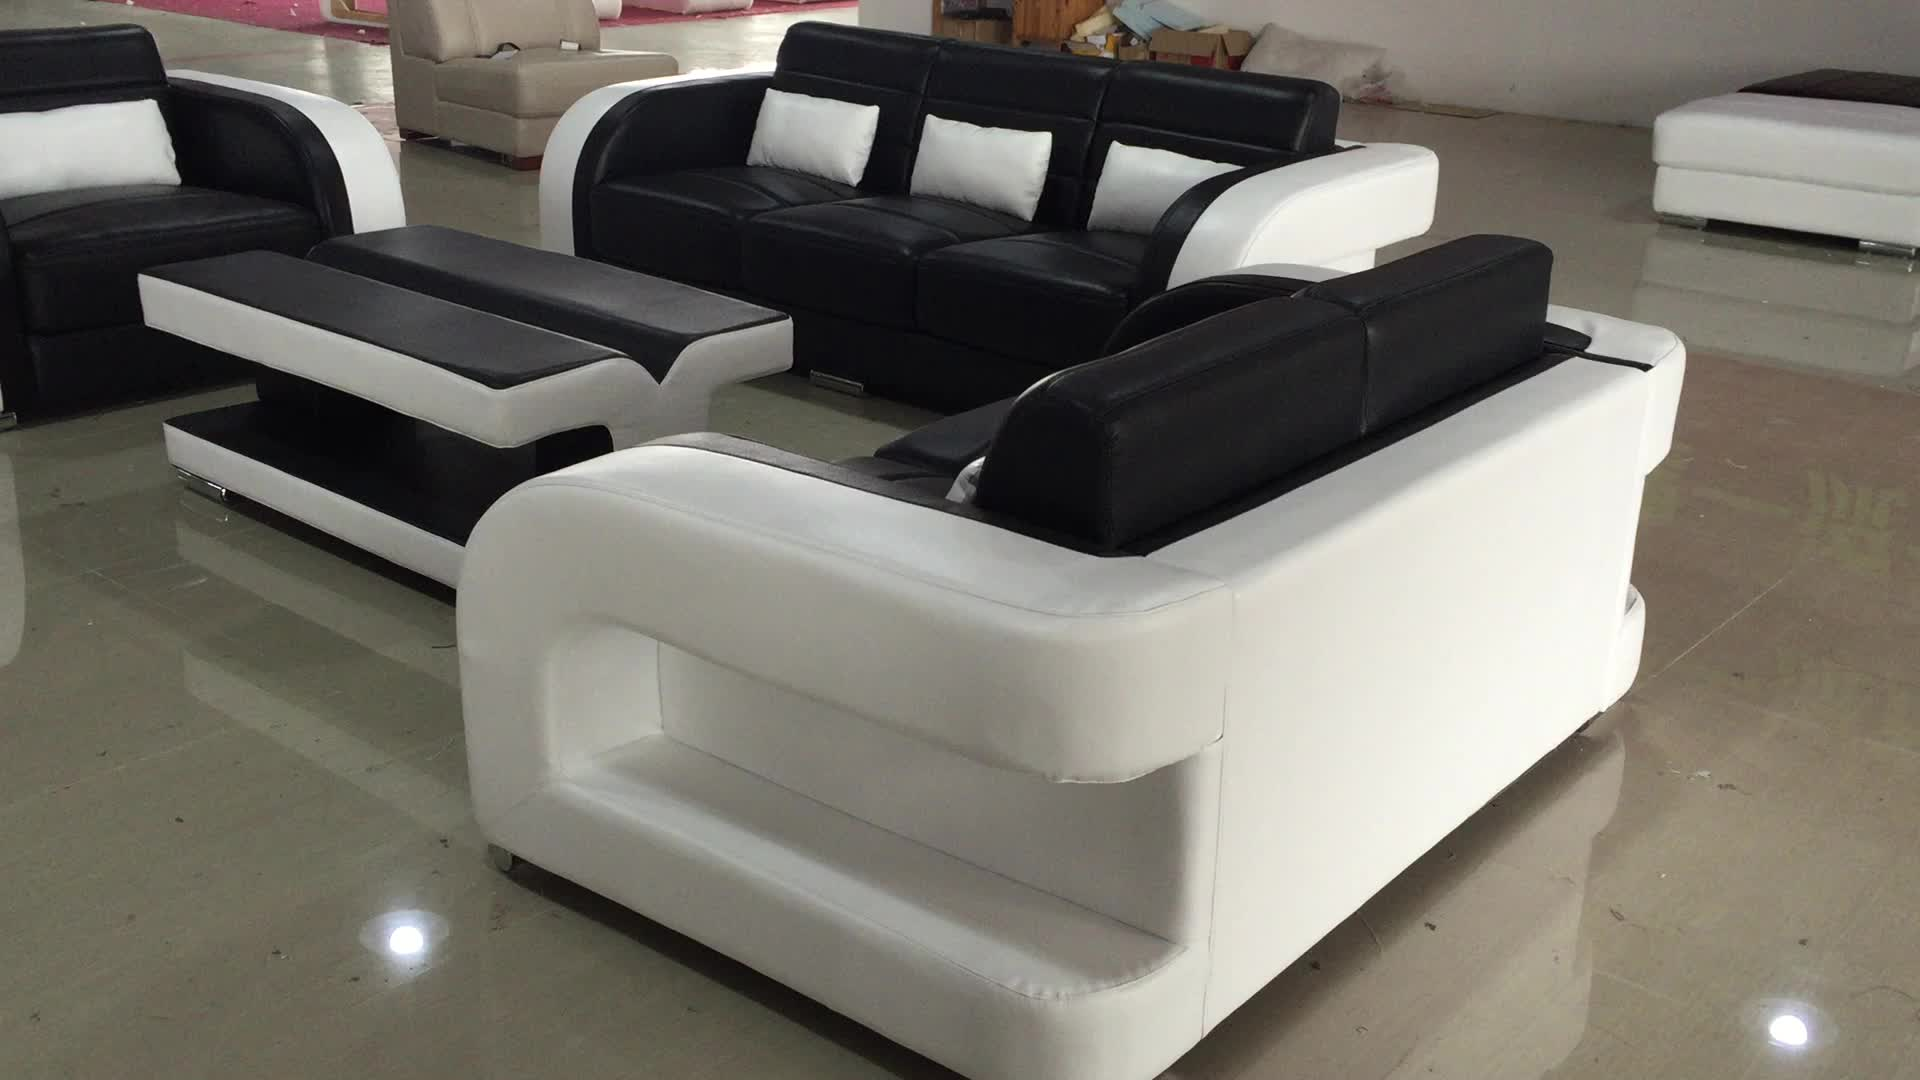 Black And White Genuine Leather Sofa For Sale C1183d